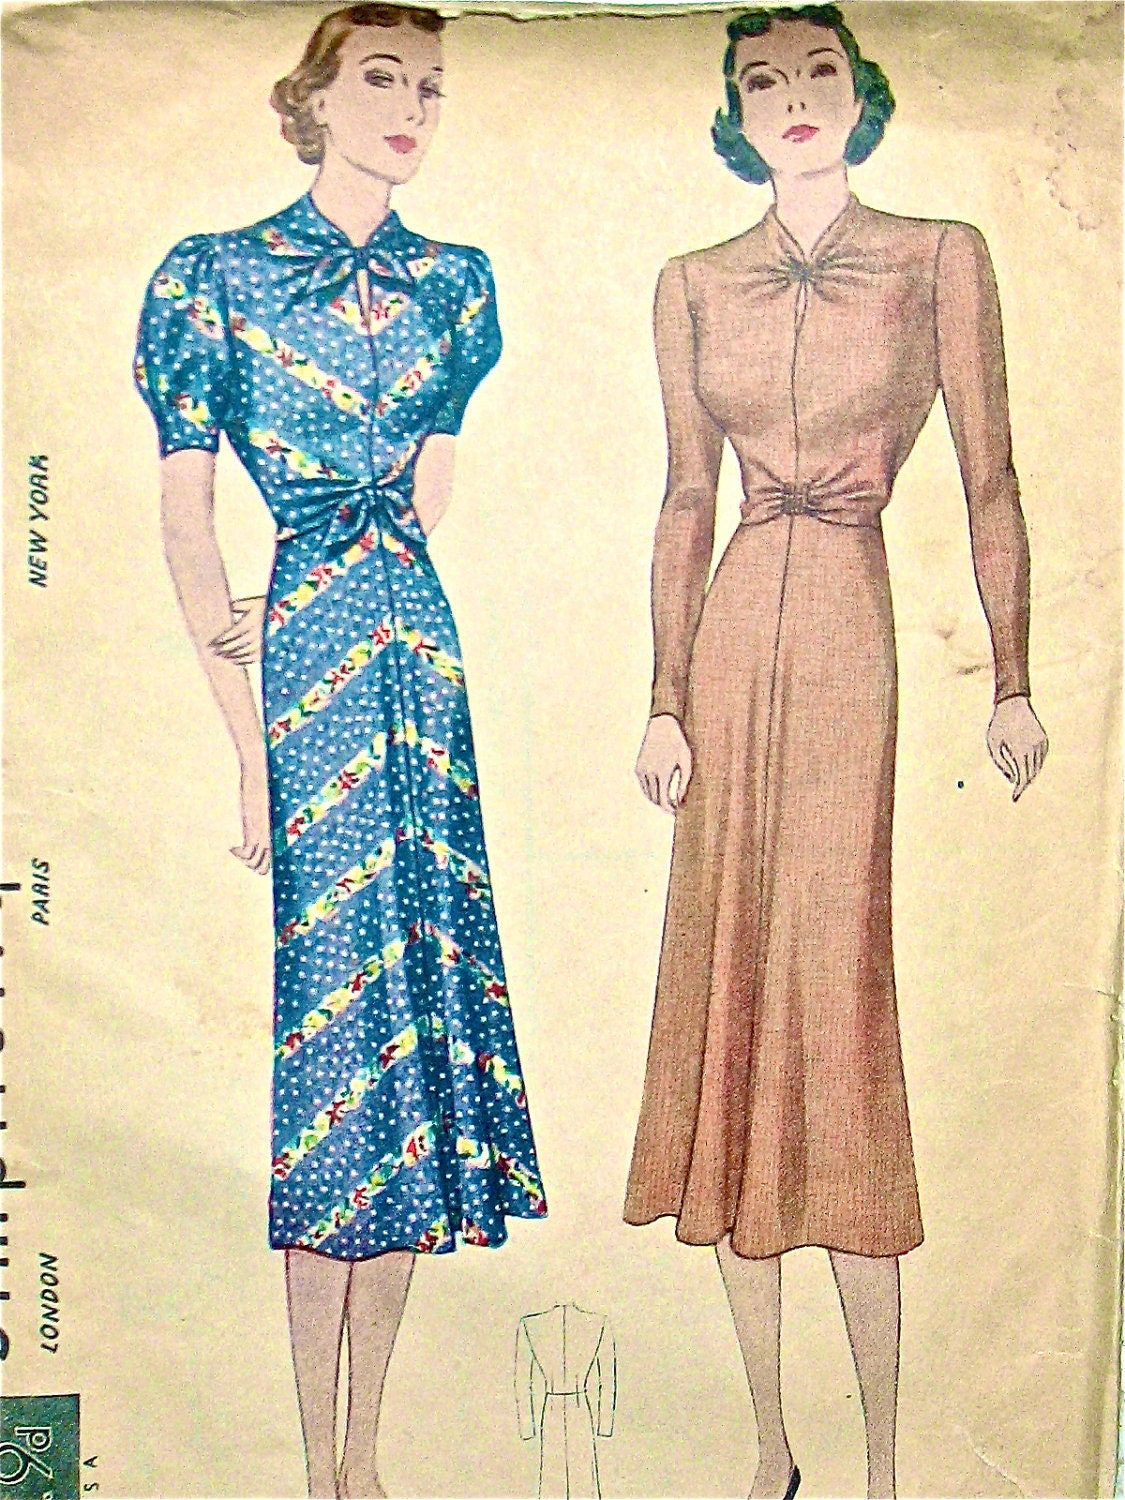 Vintage 1930s sewing pattern Simplicity 2691. Women's